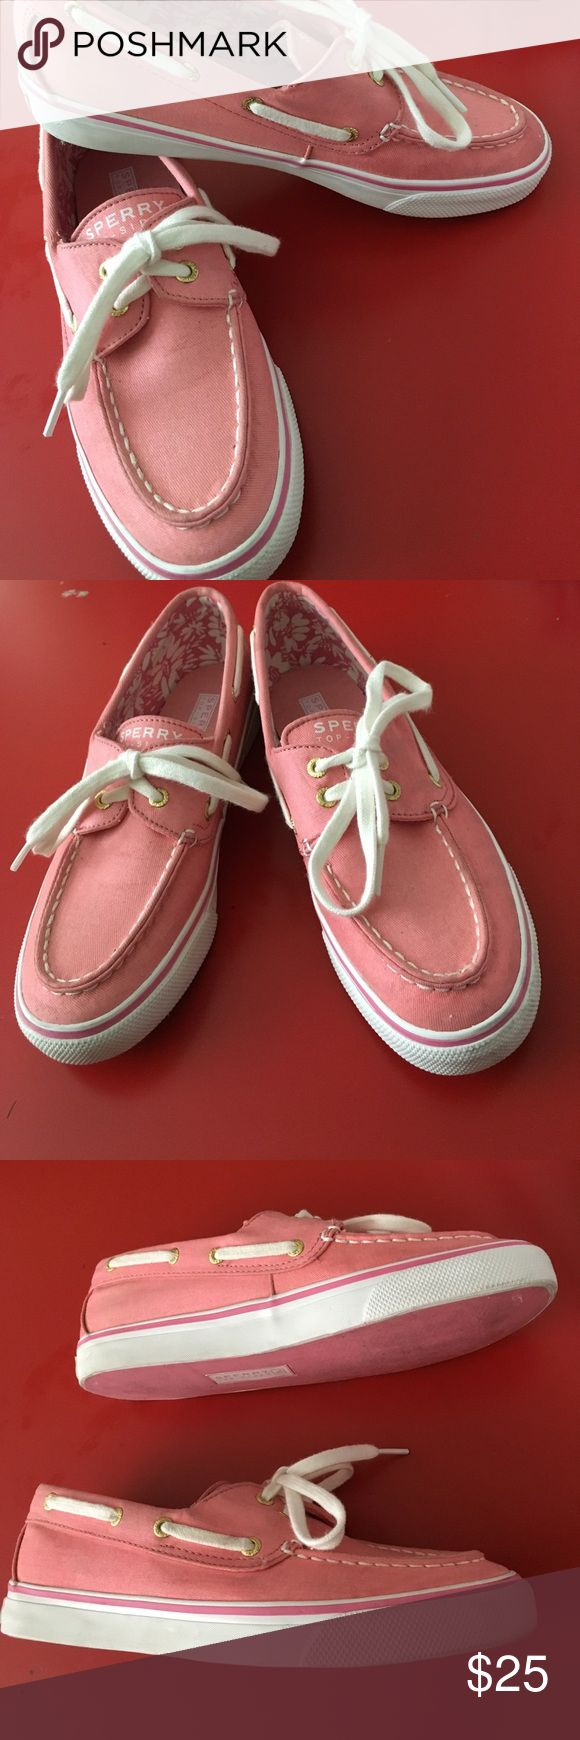 Pink Sperry Top-Siders Womens Size 6 1/2 Very Good used condition. Gold lace holes Pretty salmon type pink color. Flower pattern interior. Sperry Top-Sider Shoes Flats & Loafers